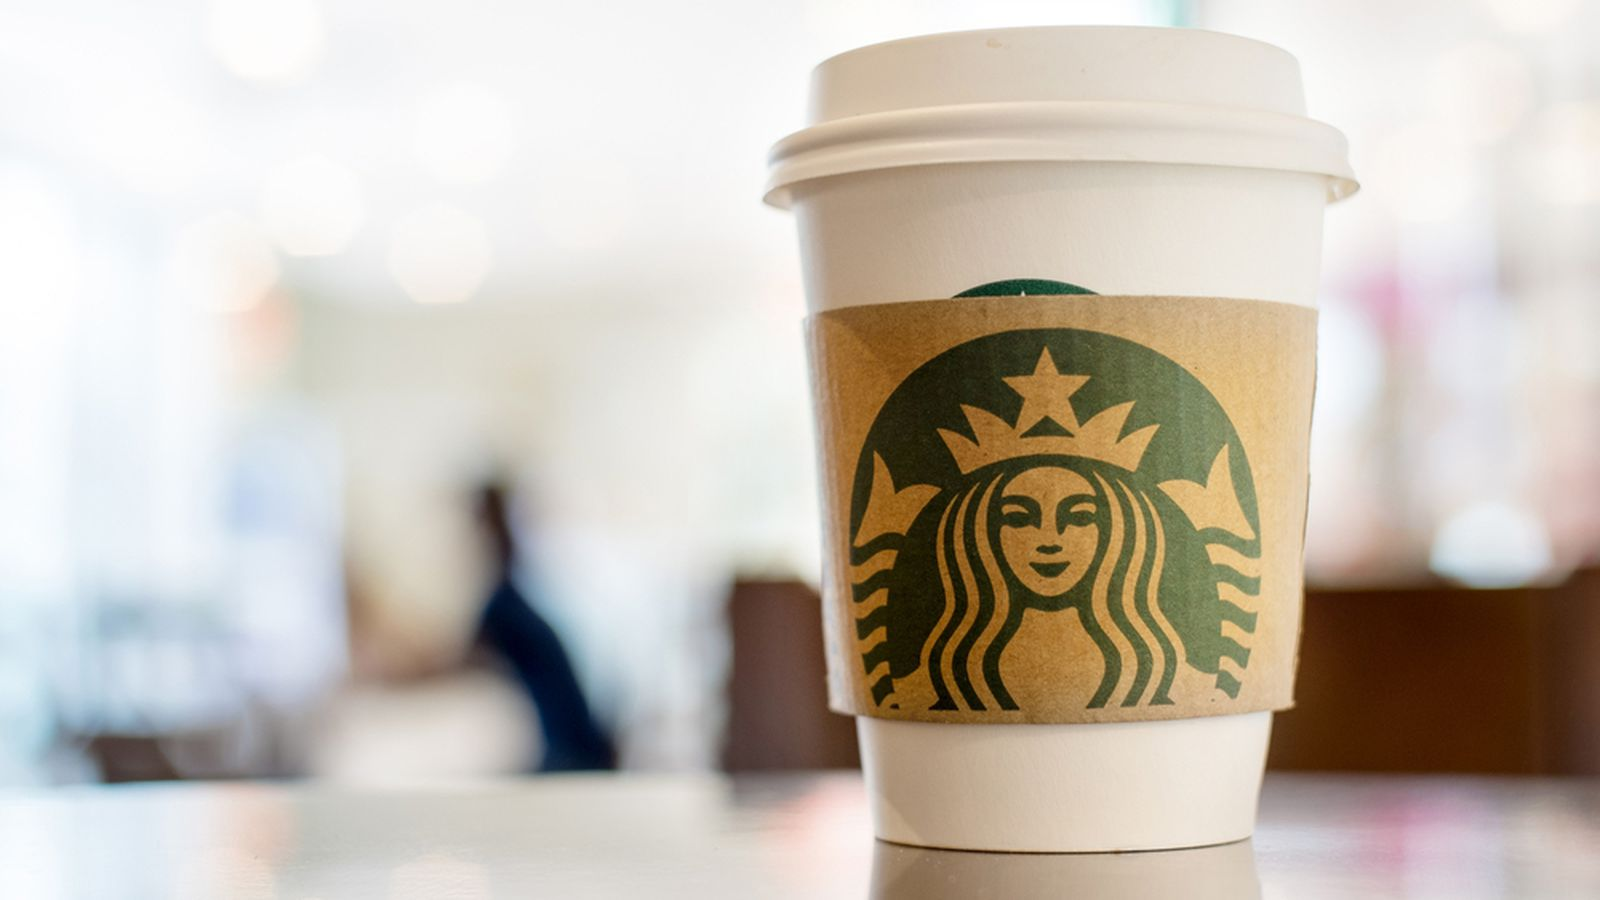 stakeholders starbucks Most of starbucks coffee company's stakeholders' interests are satisfied through the firm's starbucks coffee company's stakeholder management approaches are based on different.